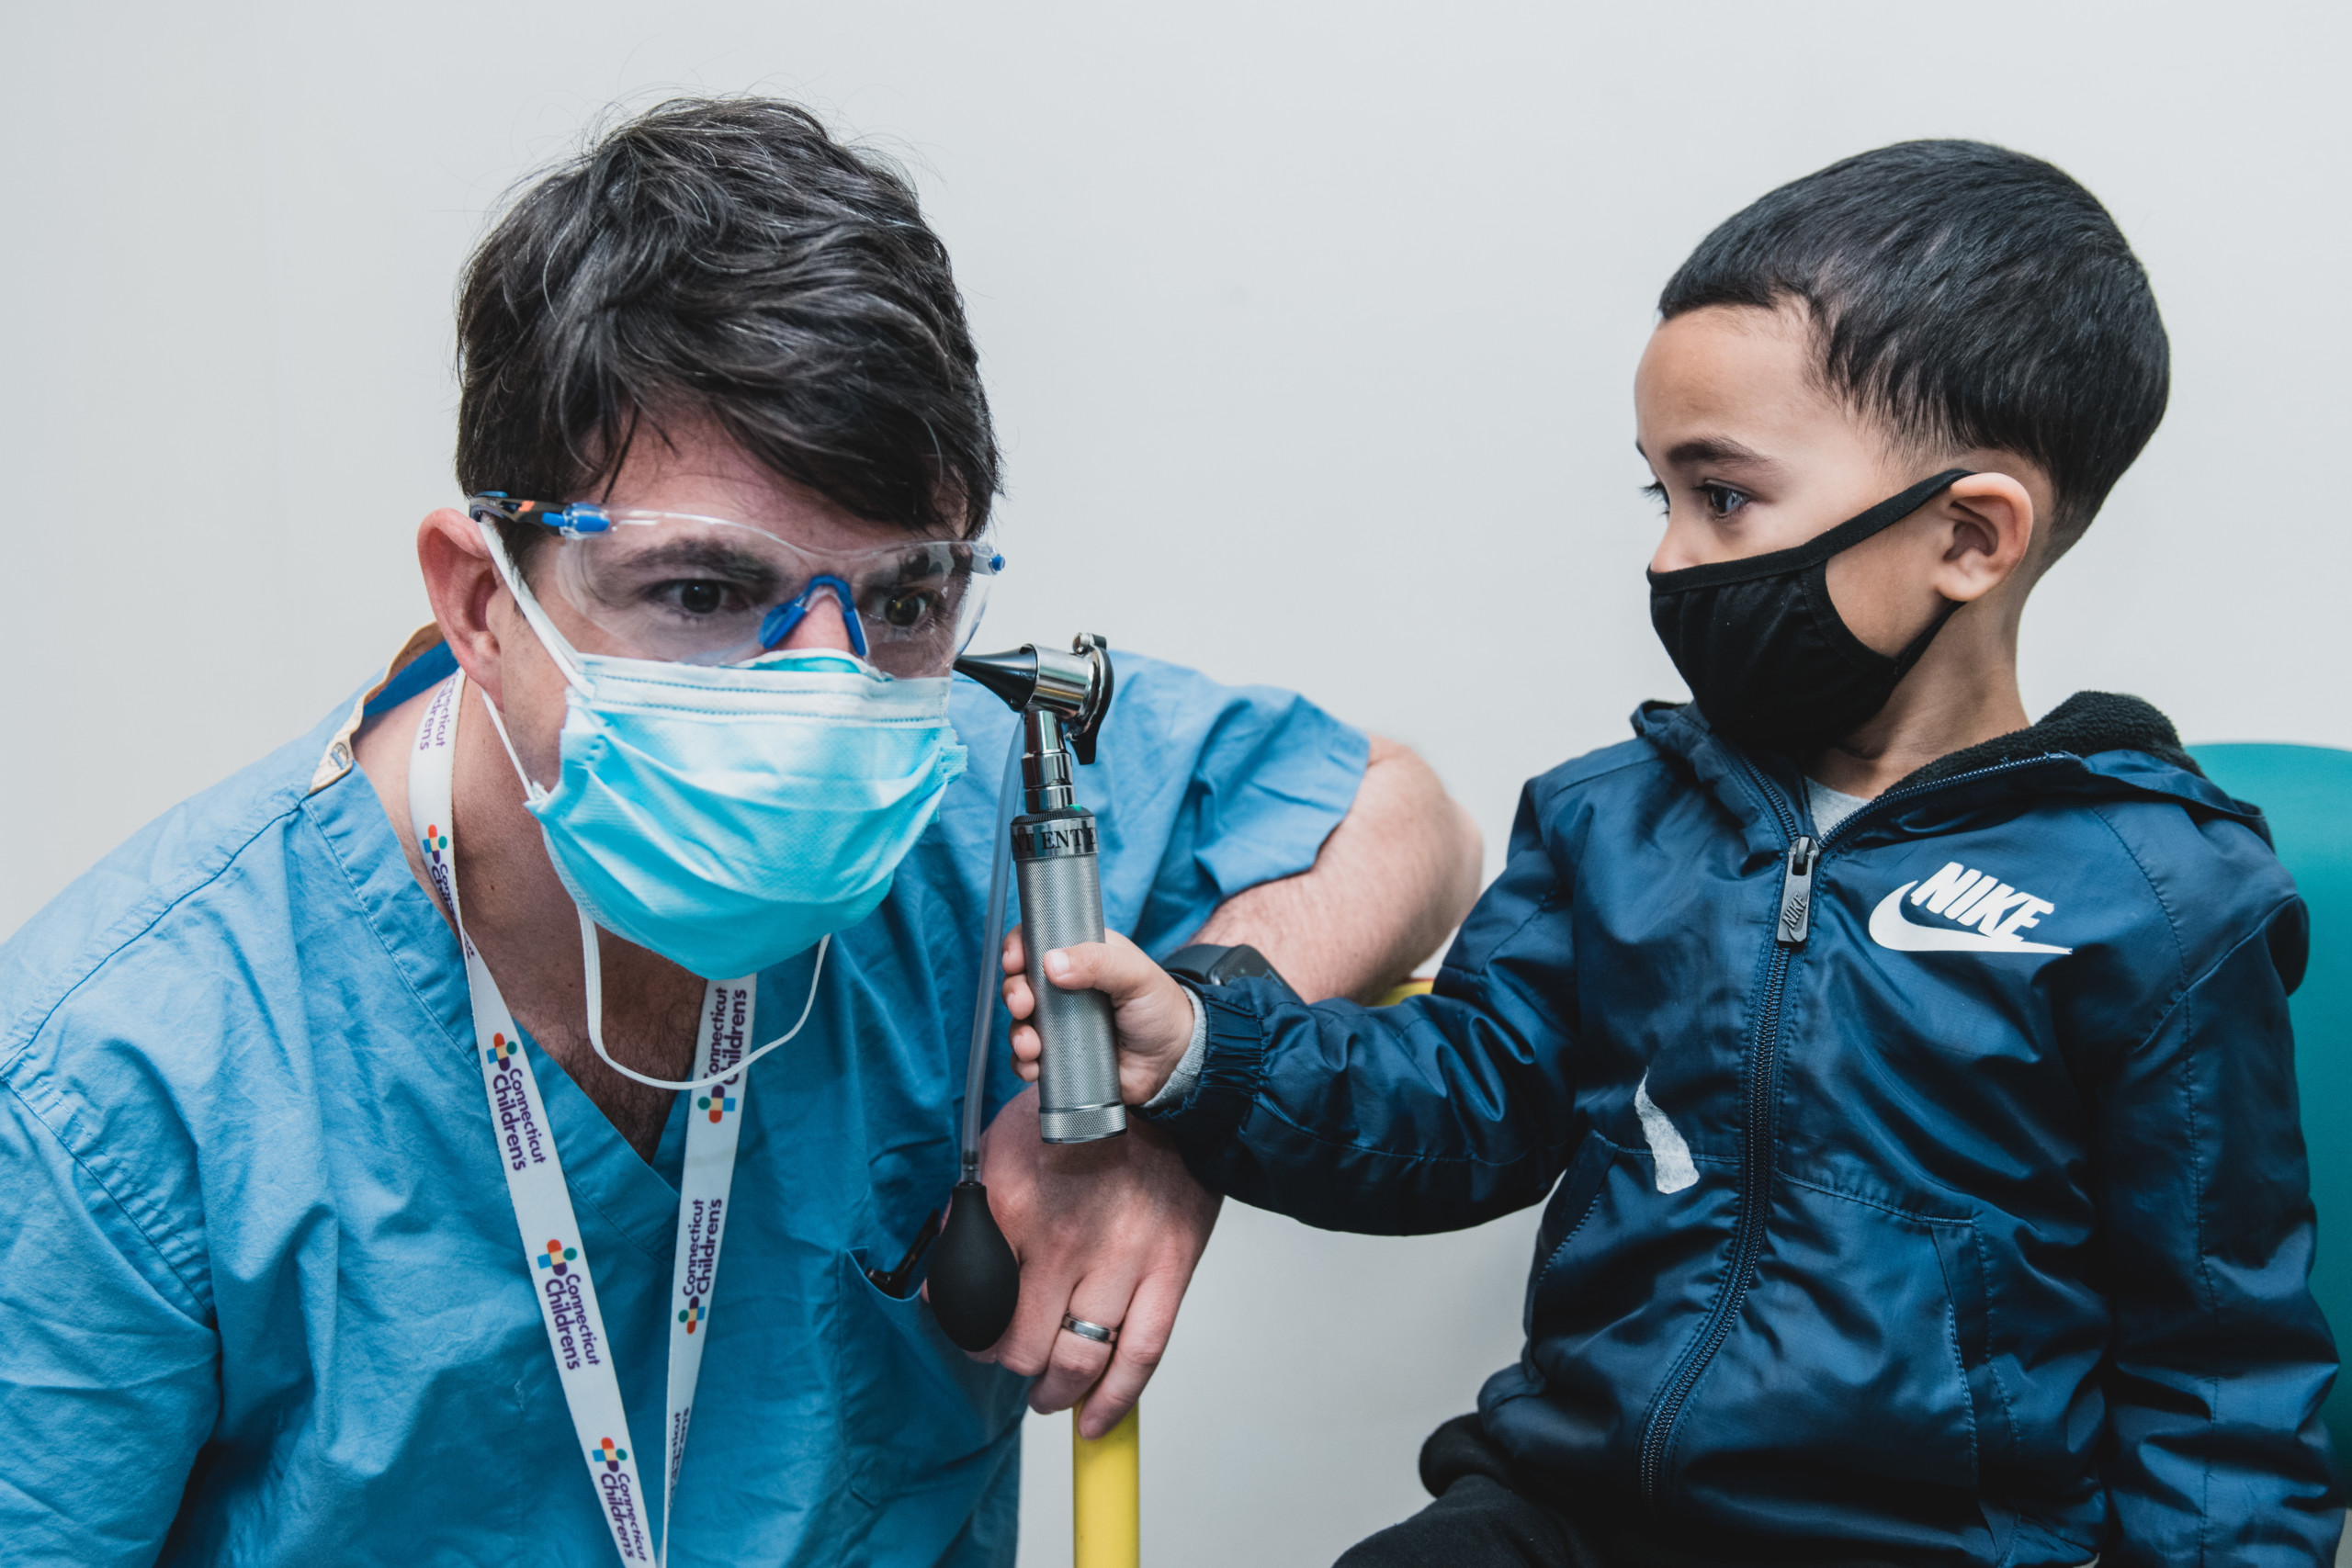 ENT specialist Christopher Grindle, MD, lets patient Cameron Soto look inside his ears